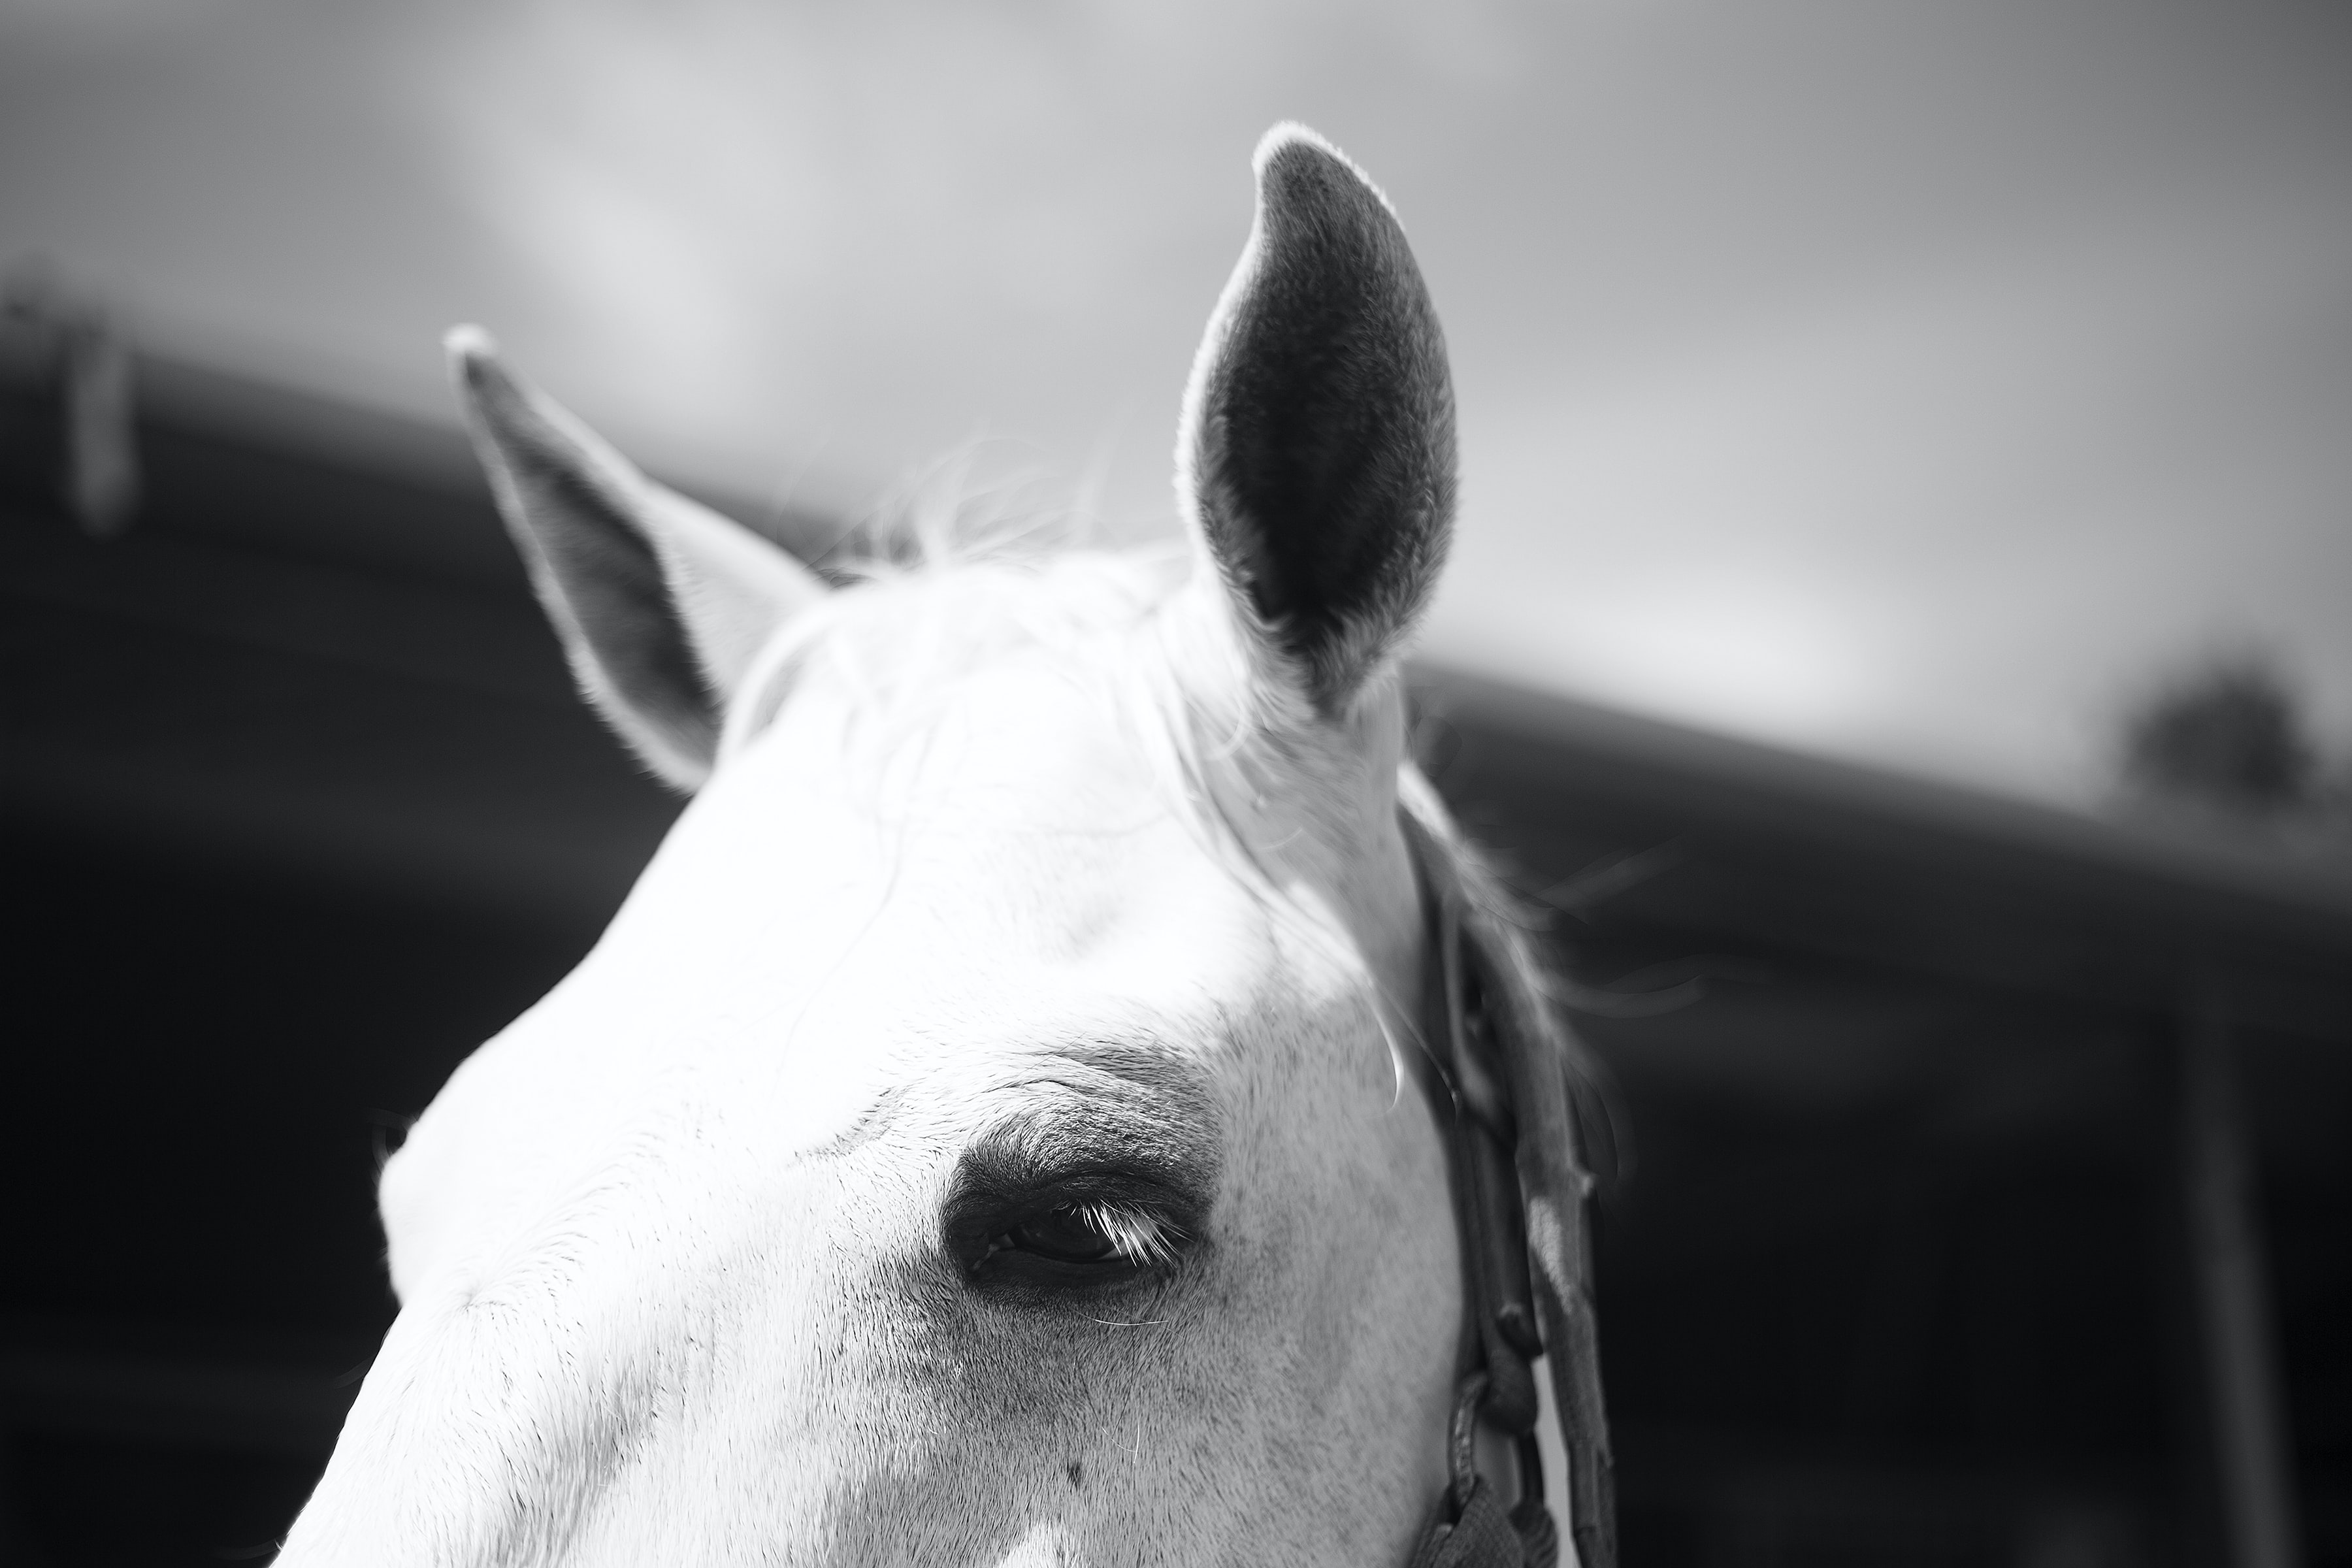 A black-and-white shot of the top of a horse's head